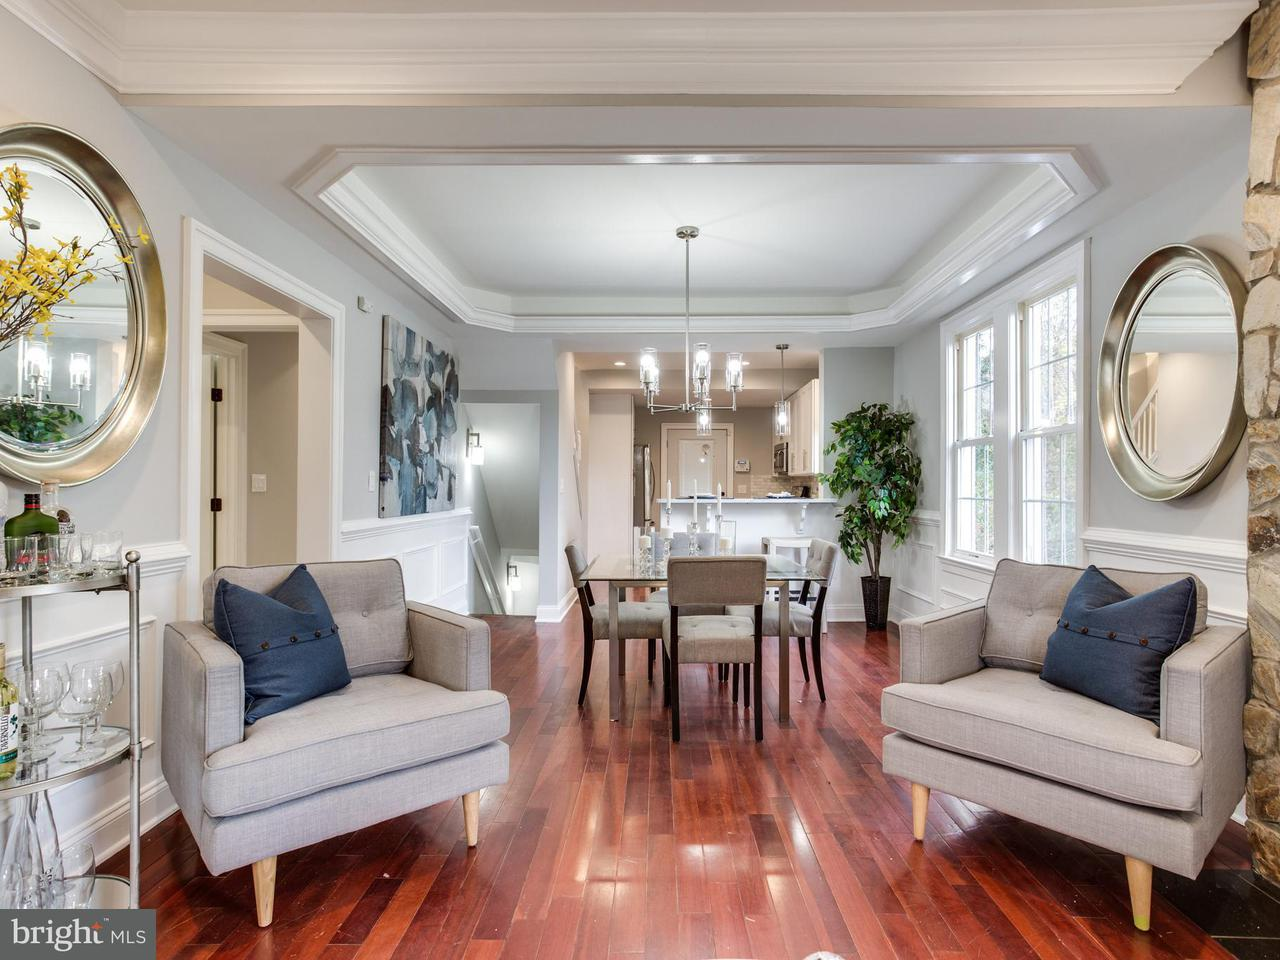 Single Family for Sale at 3716 31st Pl NE Washington, District Of Columbia 20018 United States